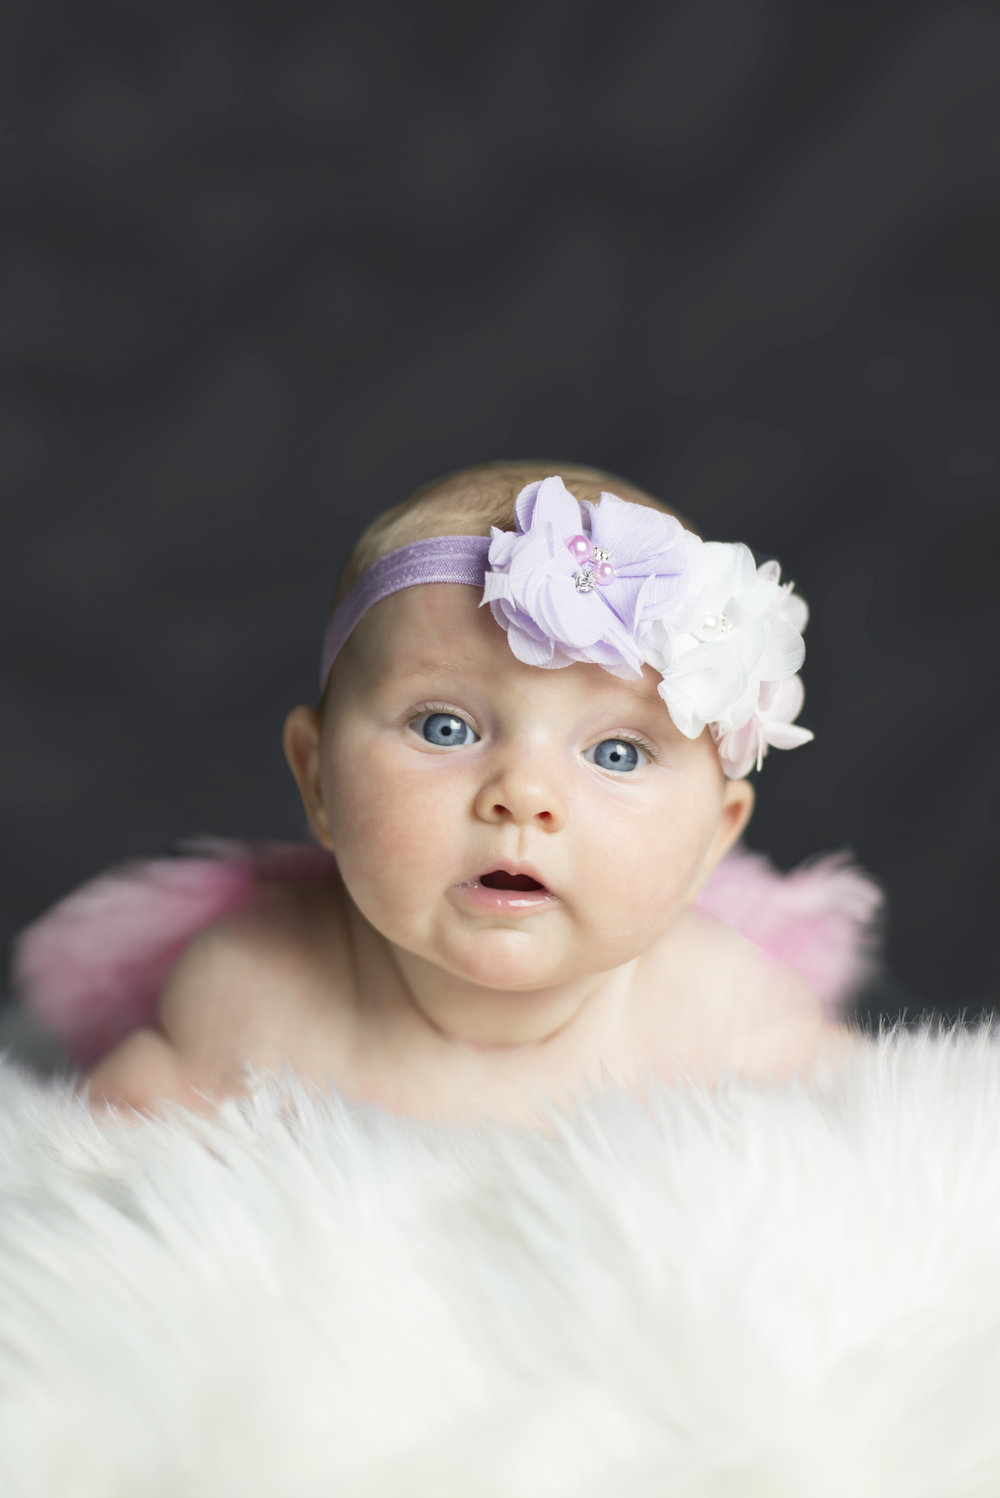 Baby Girl Photo Studio Shoot